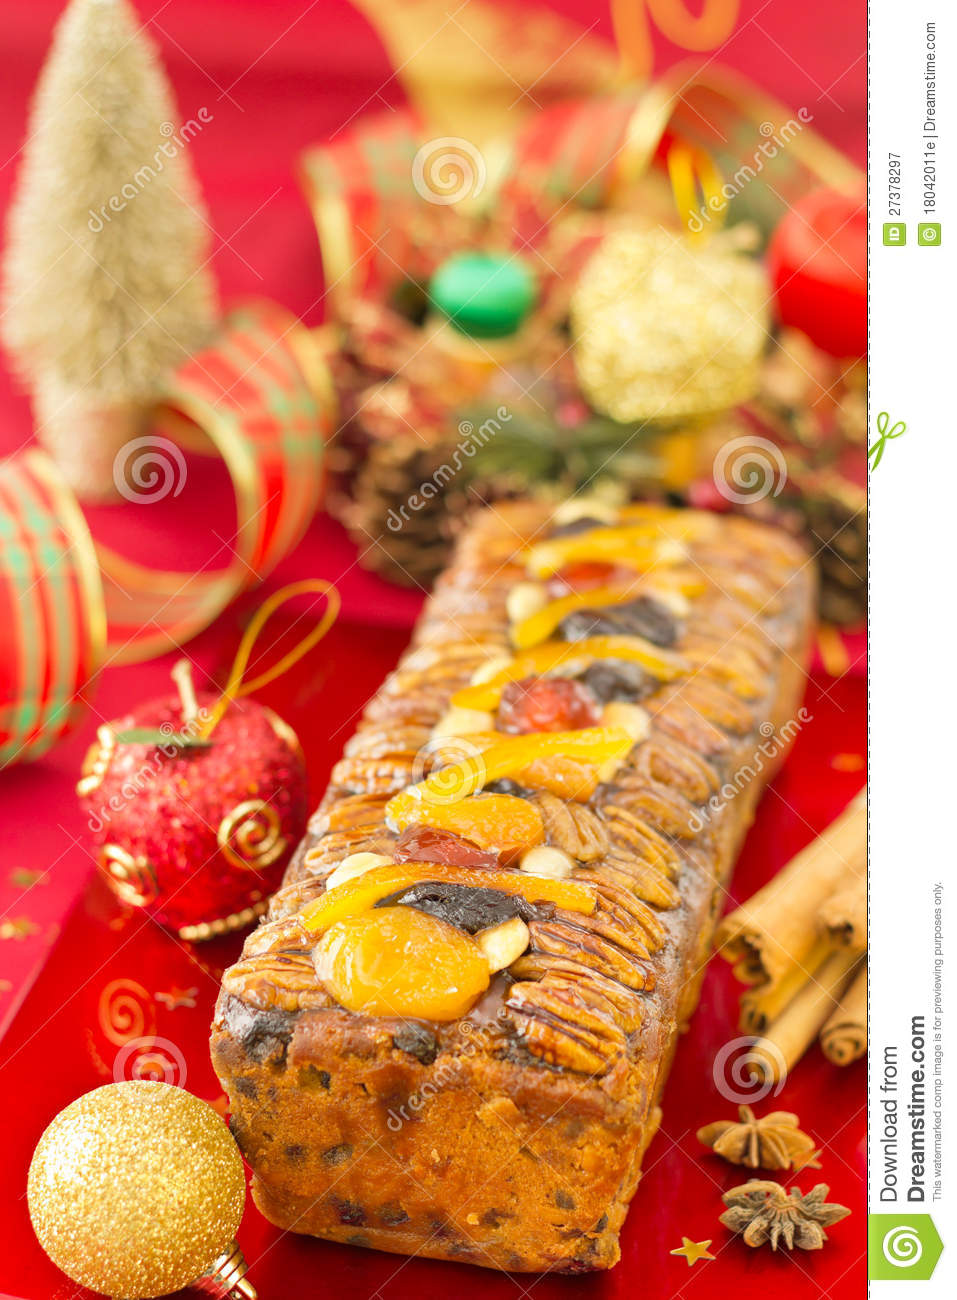 Christmas fruit cake with christmas decoration royalty for Baking oranges for christmas decoration